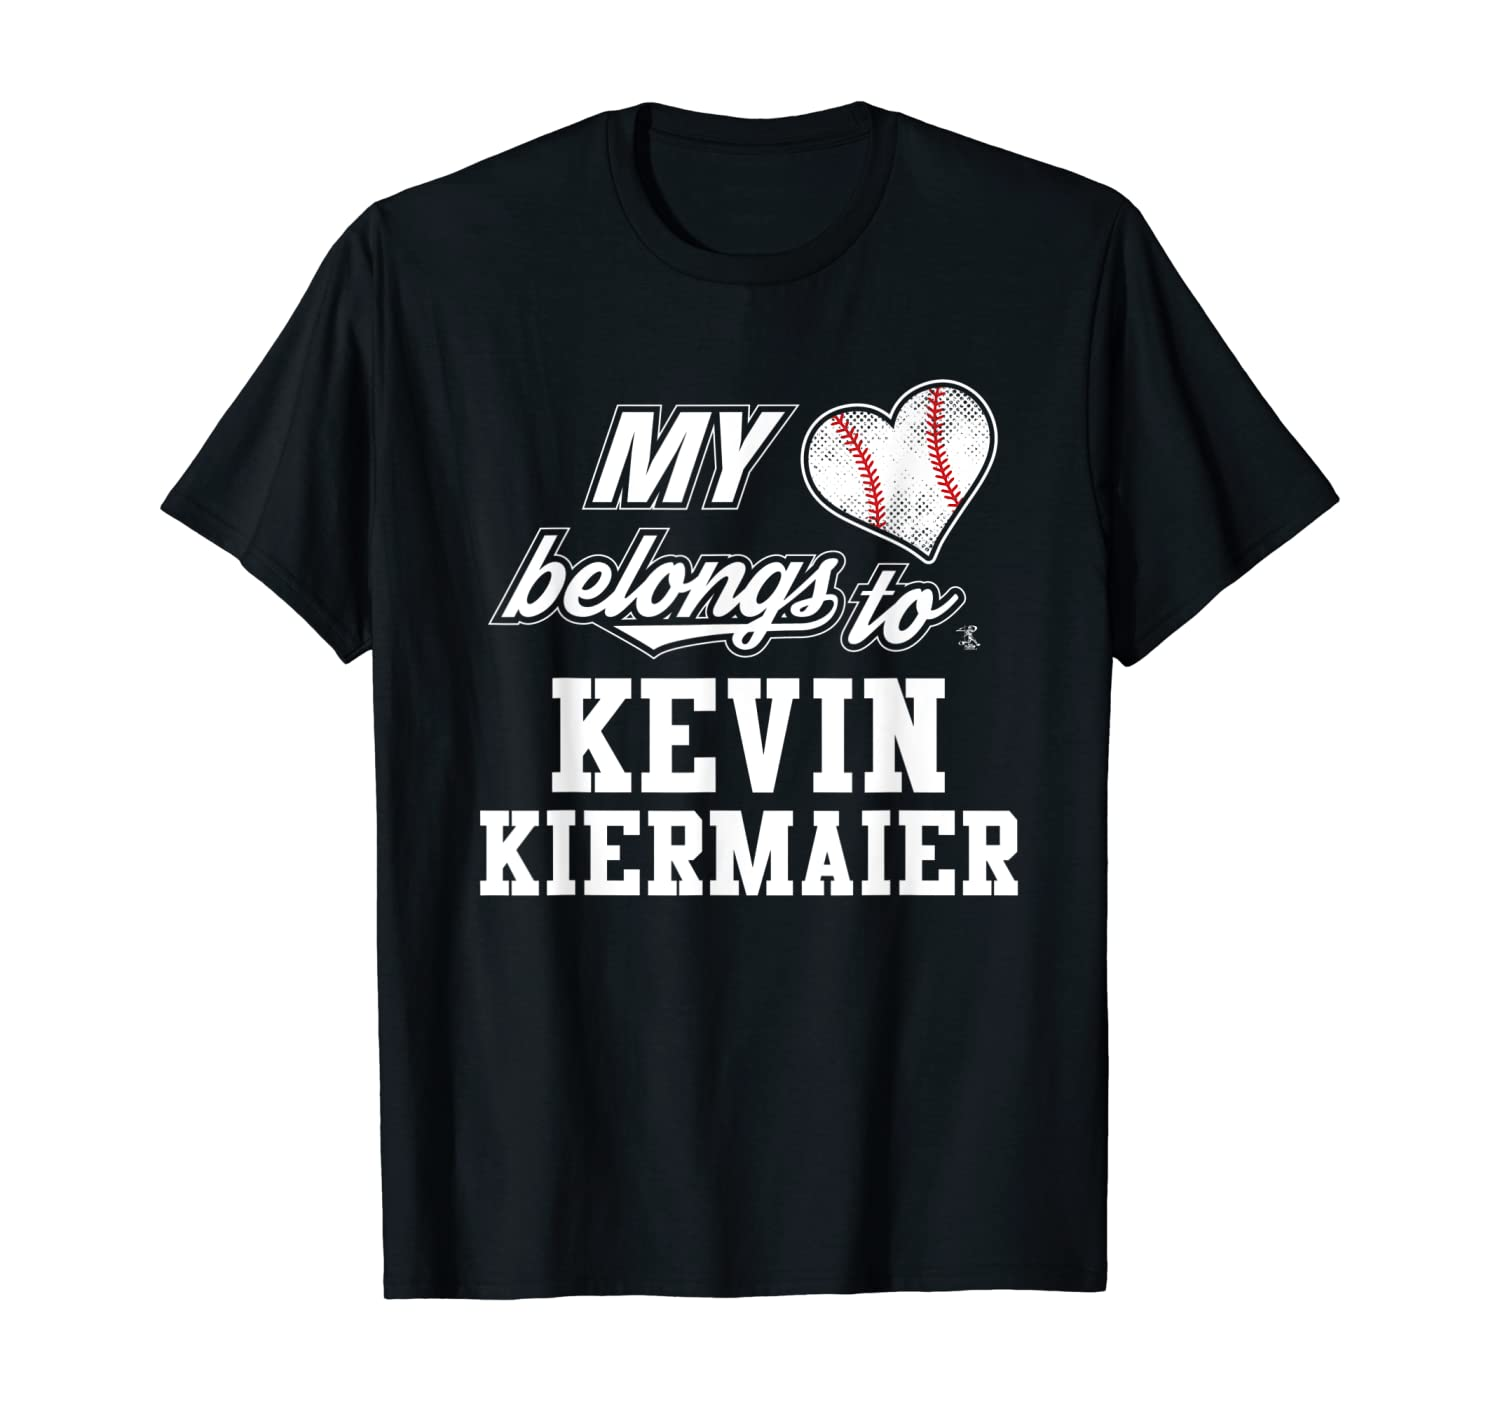 Kevin Kiermaier Gameday T-Shirt